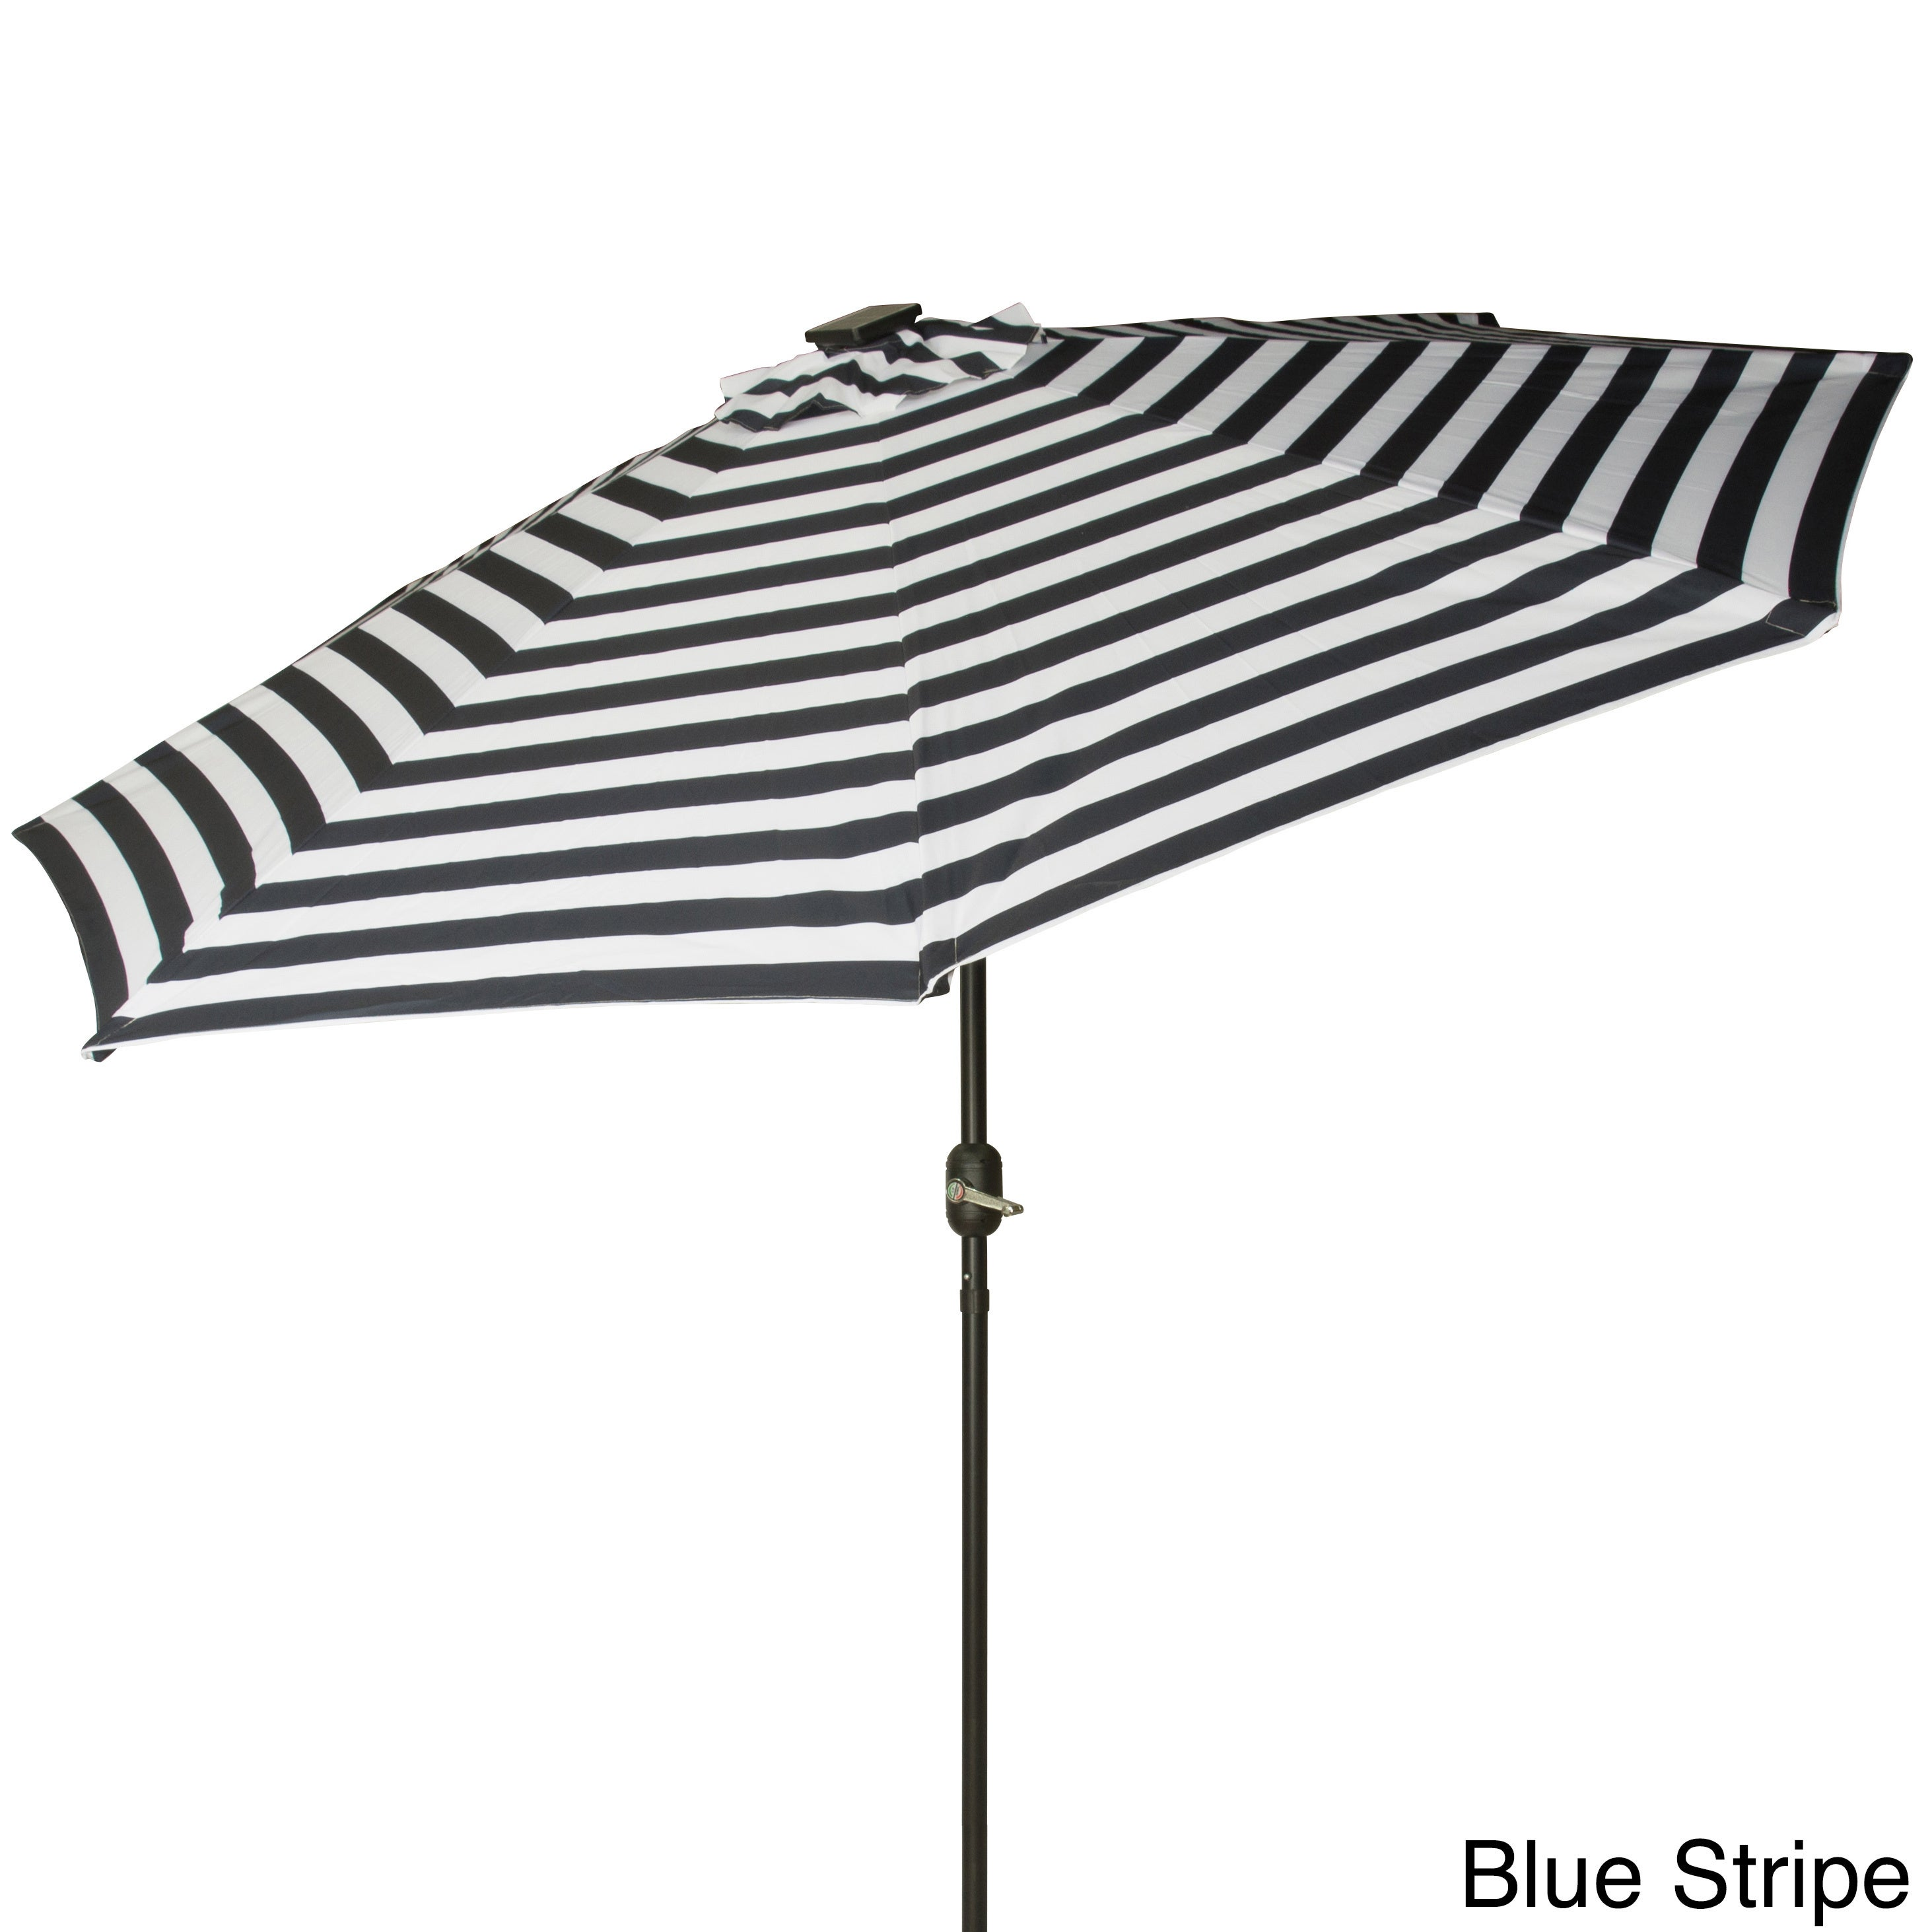 Deluxe Solar Powered LED Lighted Patio Umbrella 9 Teal Outdoor